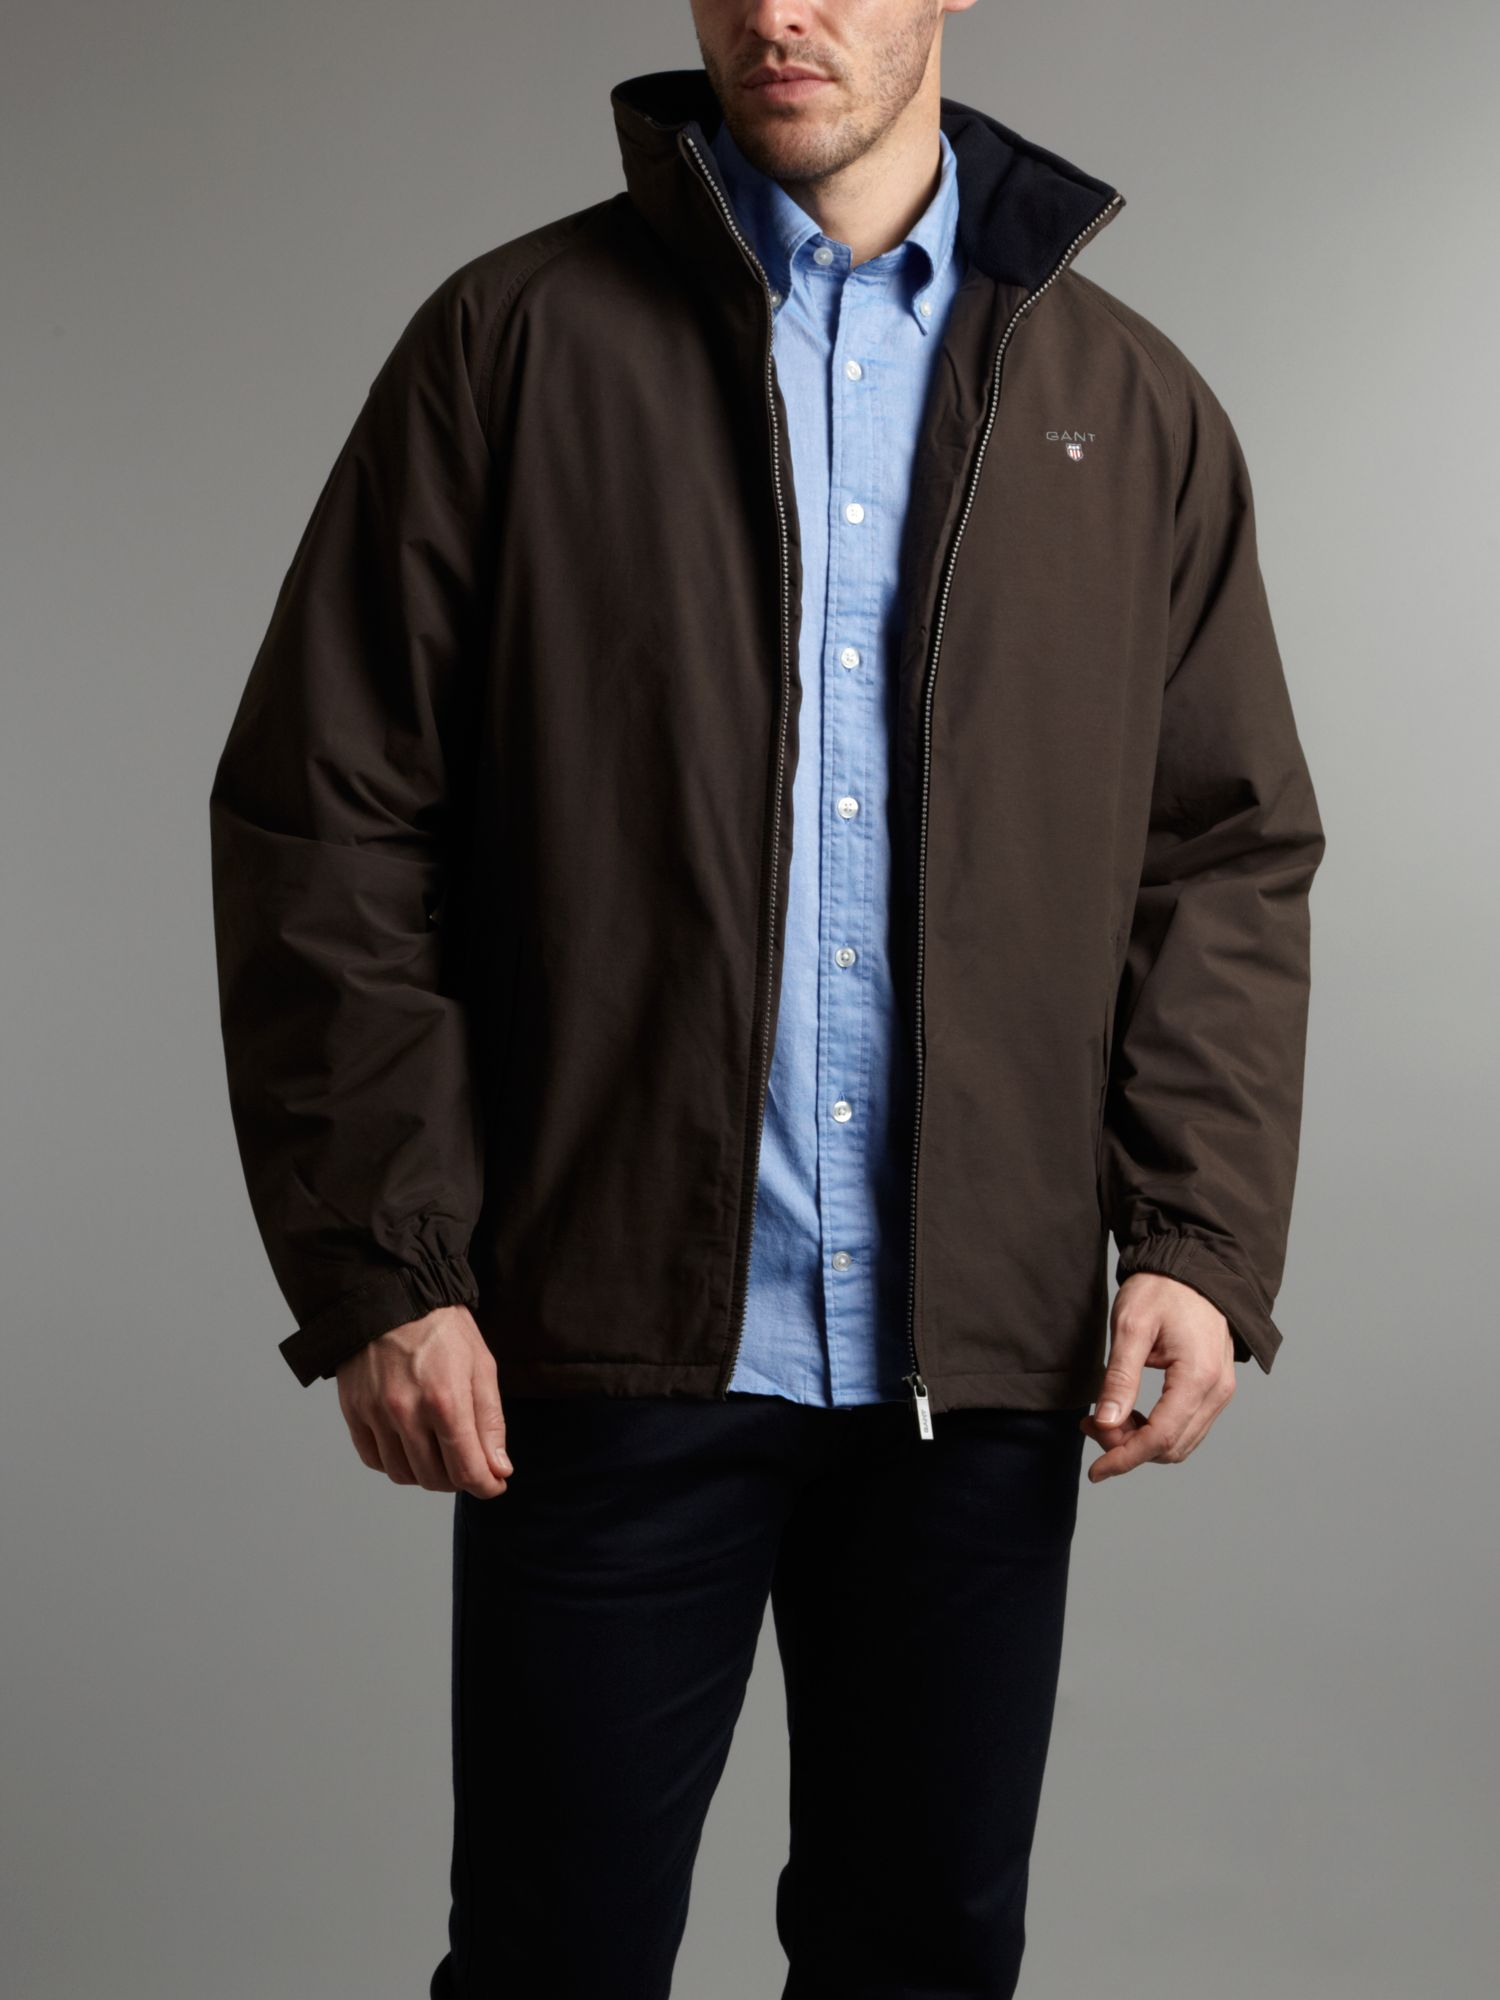 Gant Midlength Jacket In Brown For Men Lyst